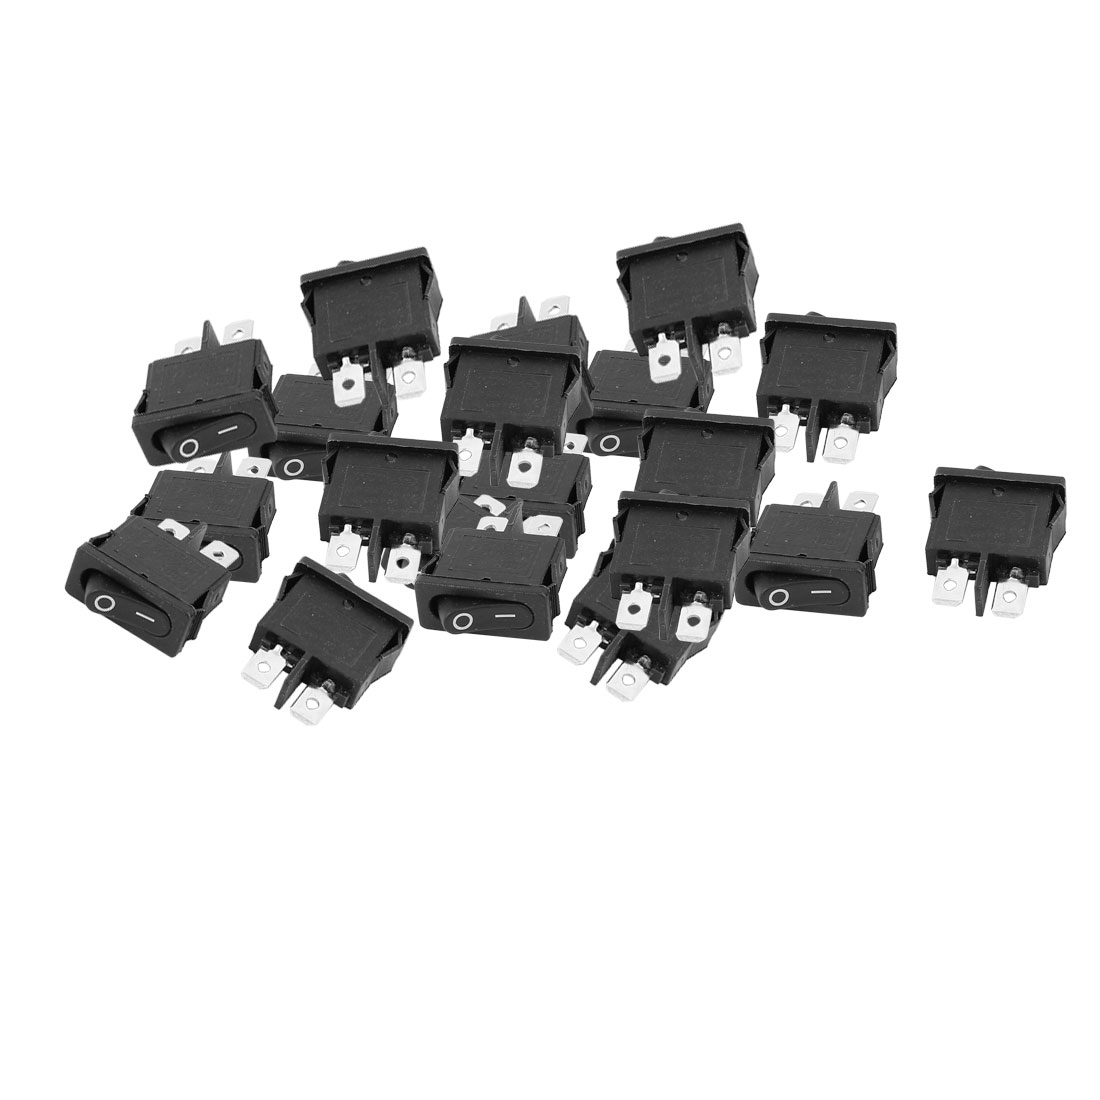 20Pcs AC250V 6A AC125V 10A 2 Terminals Locking SPST On Off Snap in Boat Rocker Switch